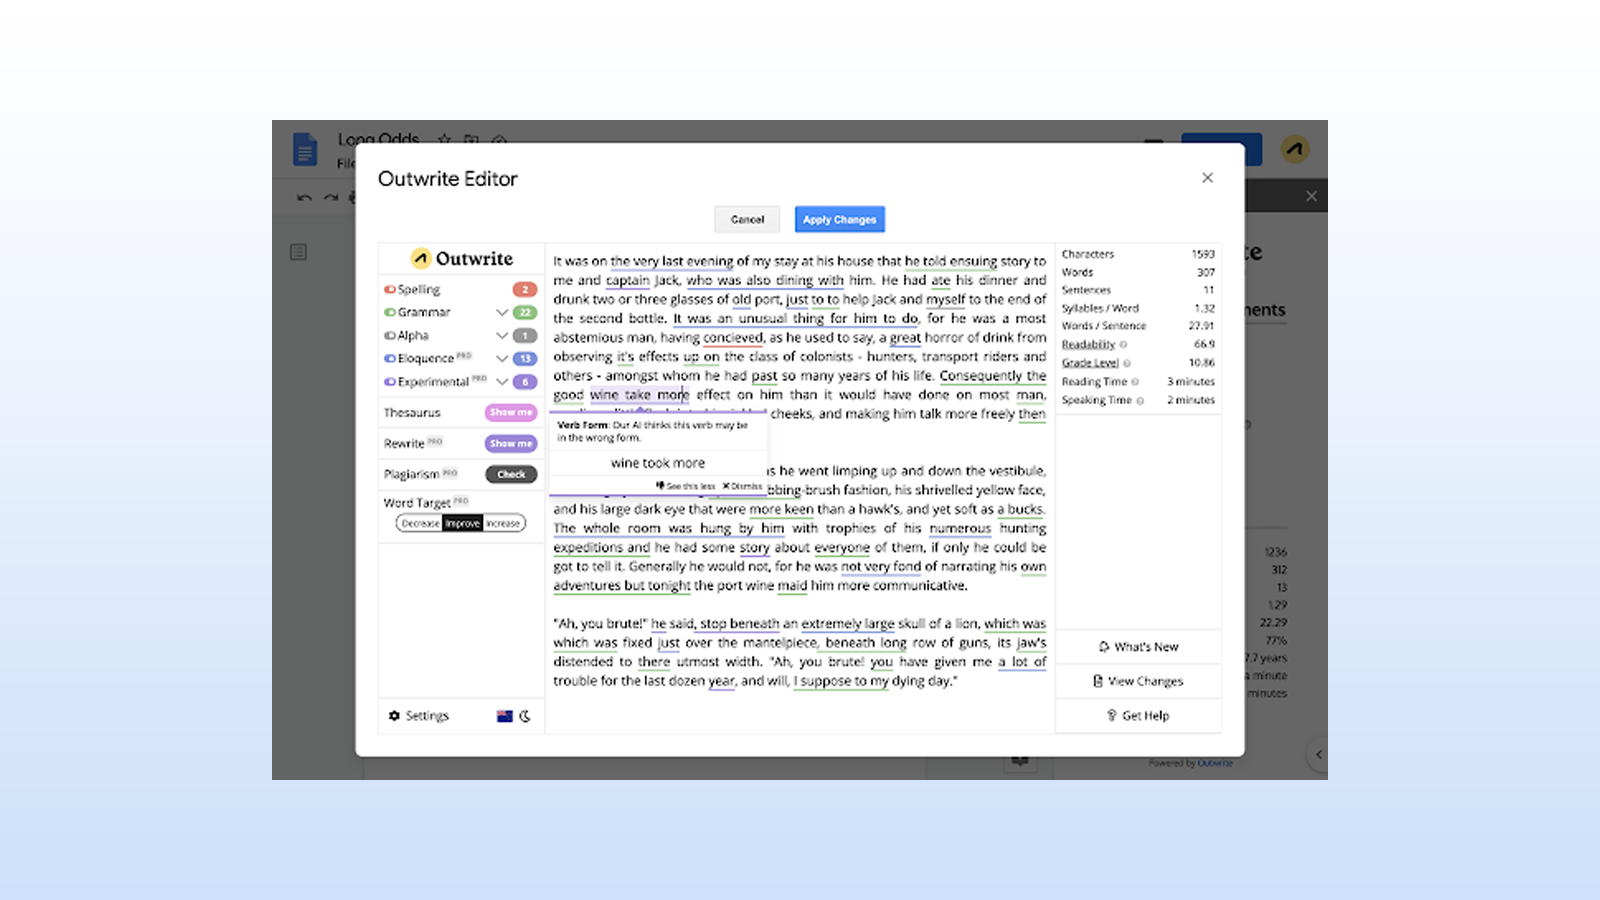 Outwrite add-on for checking spelling and grammar